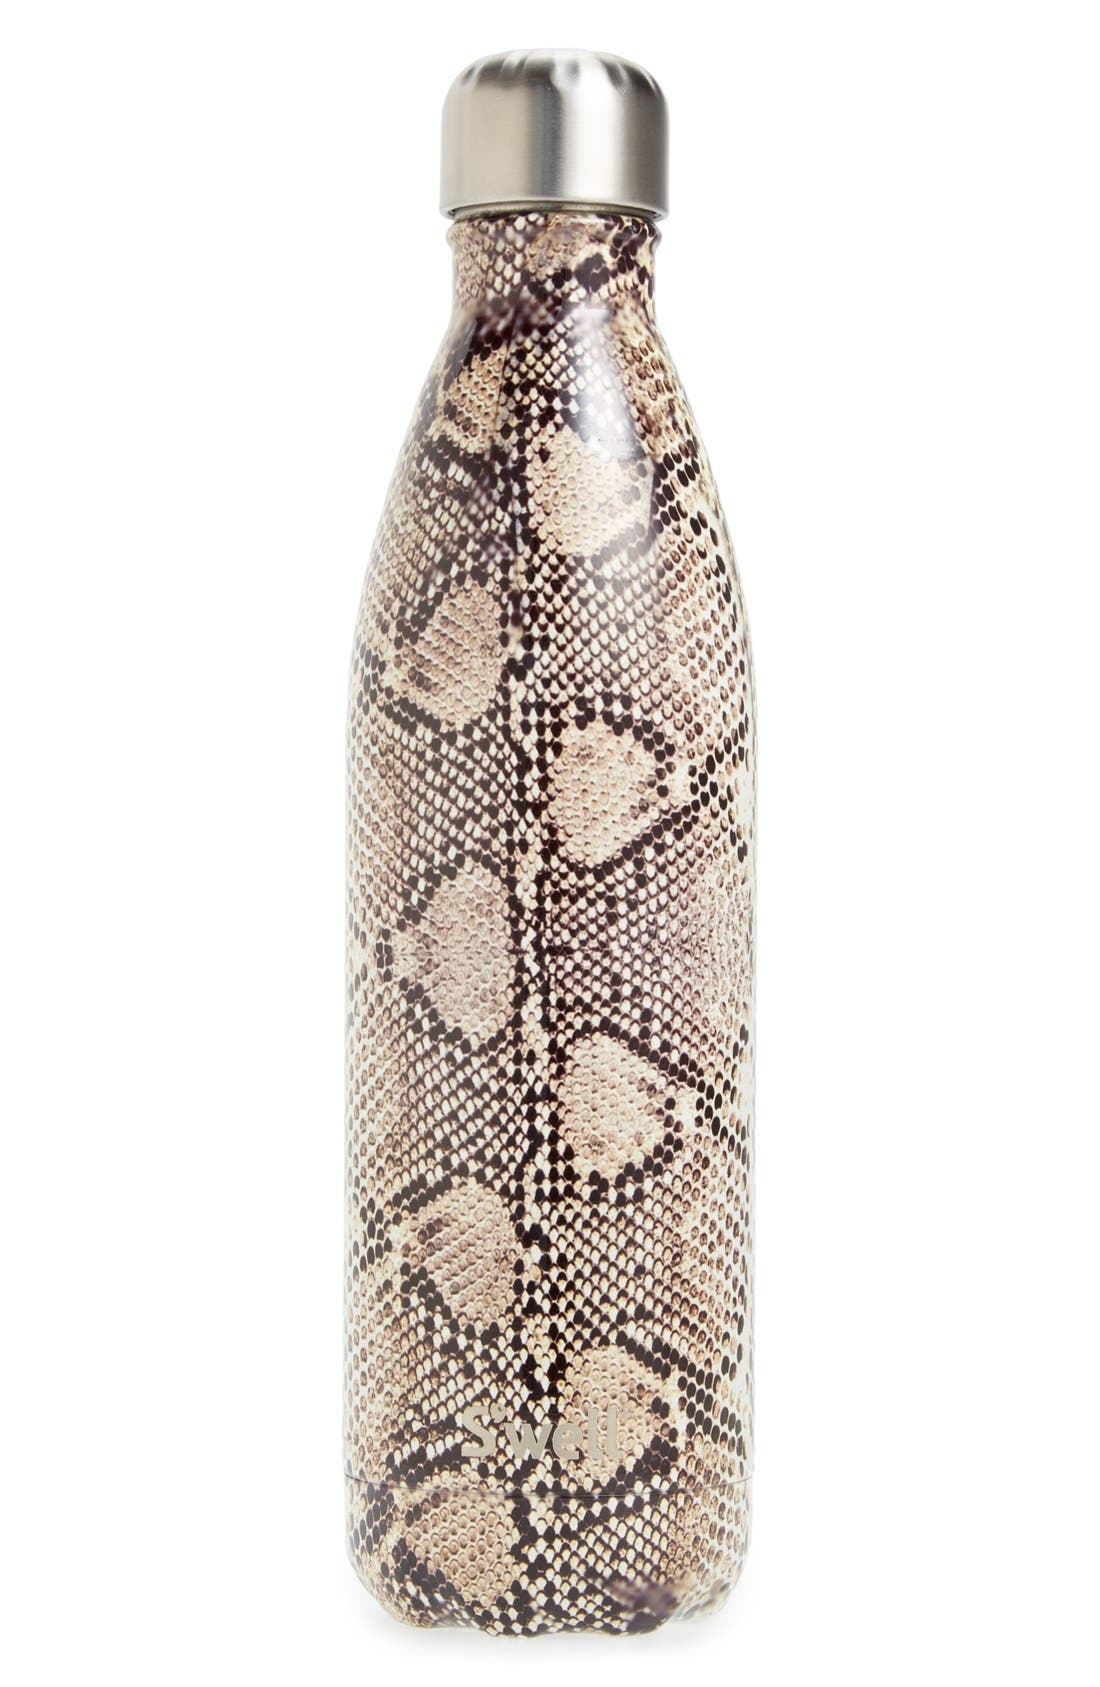 Alternate Image 1 Selected - S'well 'Exotics Collection - Sand Python' Stainless Steel Water Bottle